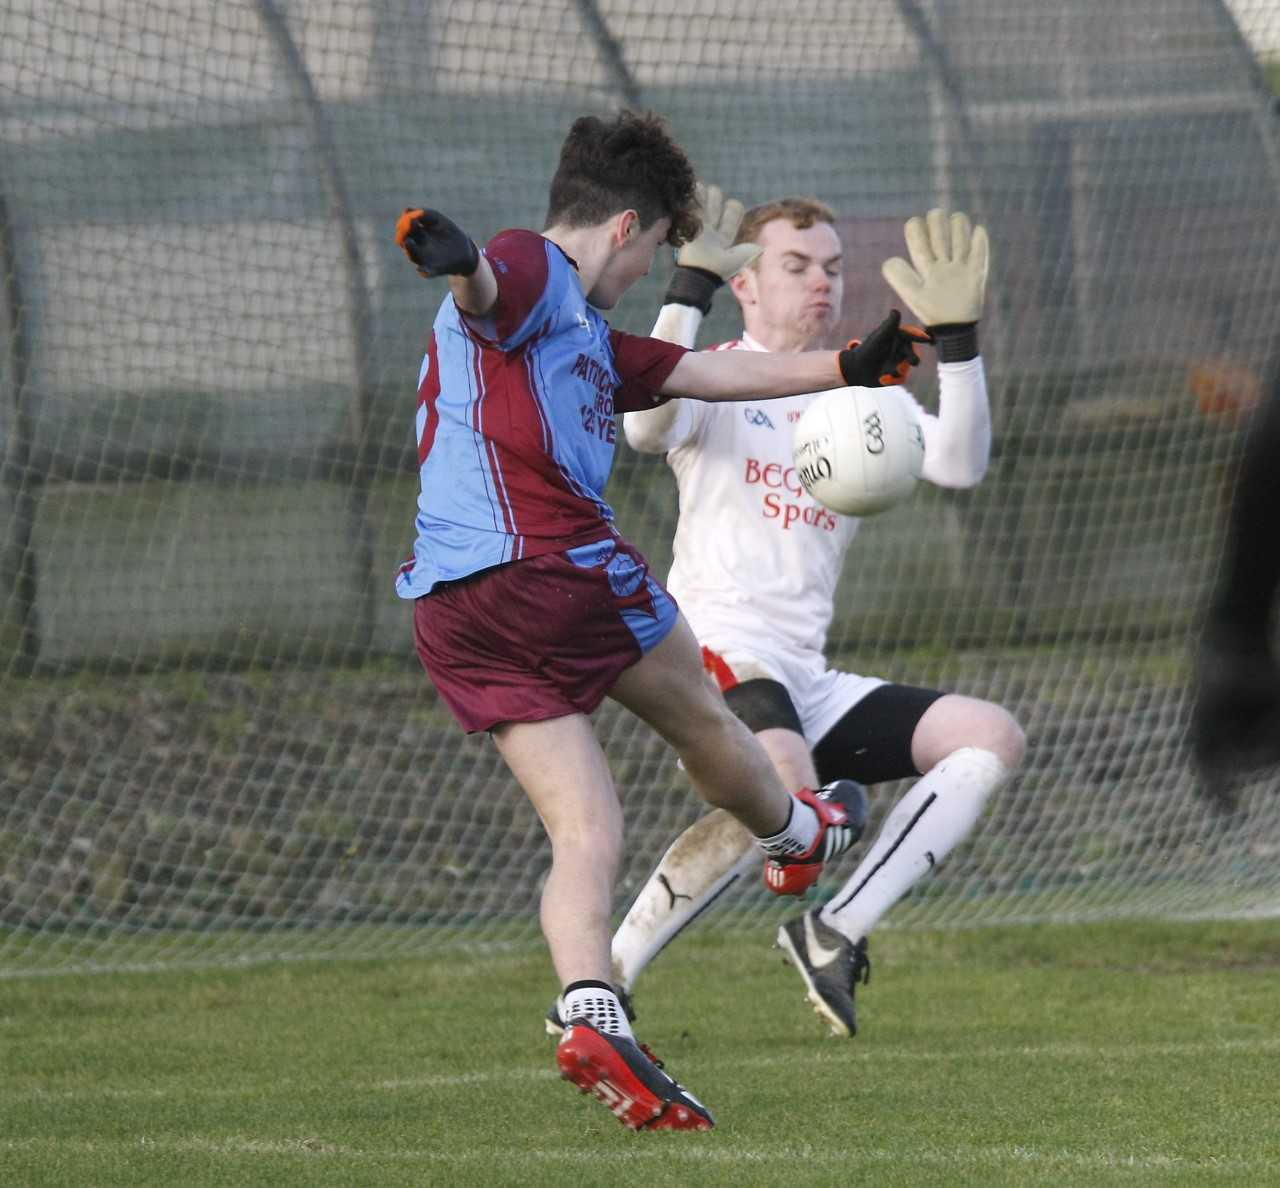 St Michael's forward Darragh McBrien slams the ball past the St Patrick's, Dungannon goalkeeper and was also on target in Wednesday's superb semi-final win over St. Pat's, Maghera.